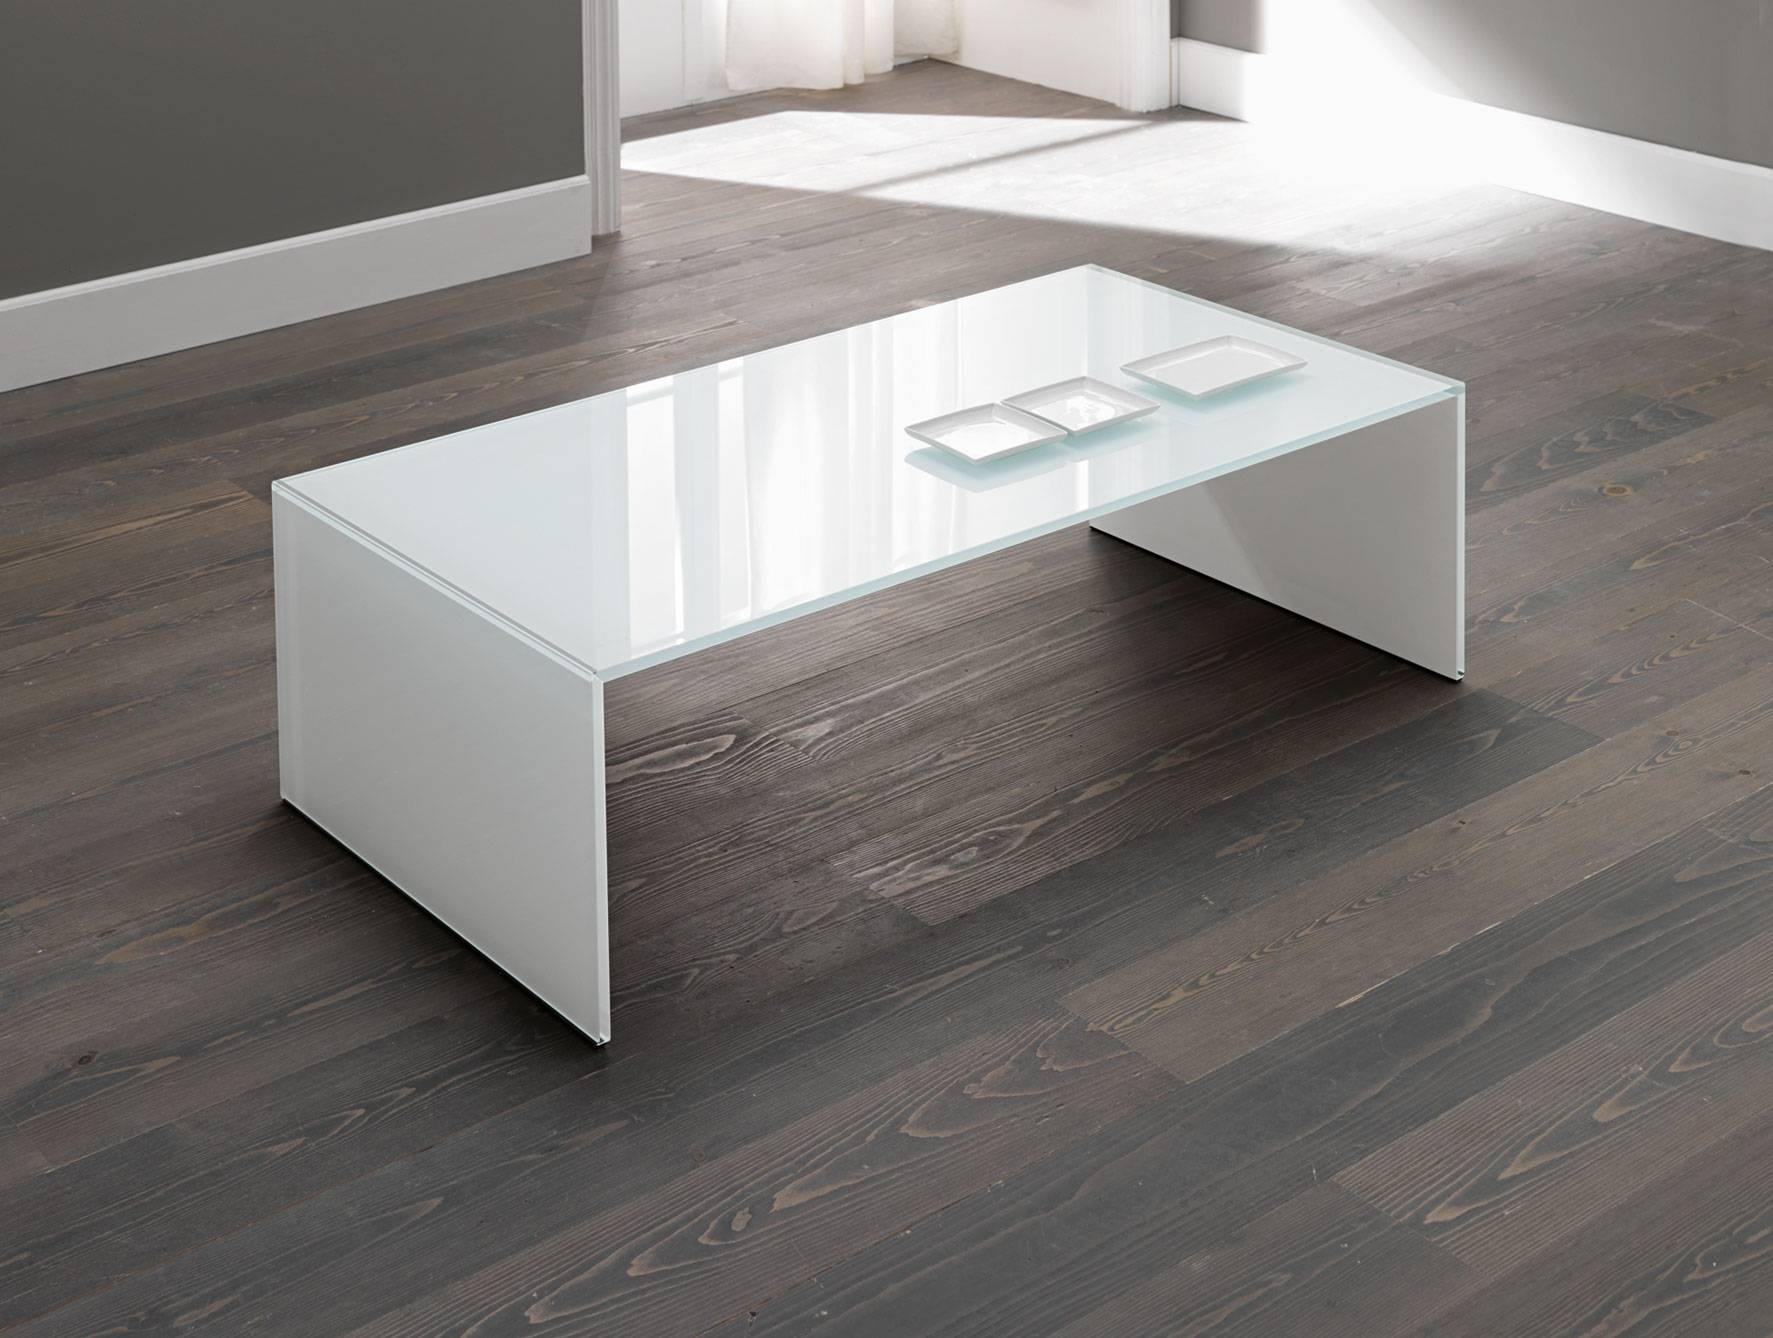 Nella Vetrina Tonelli Qubik Modern White Italian Glass Coffee Table pertaining to White And Glass Coffee Tables (Image 22 of 30)